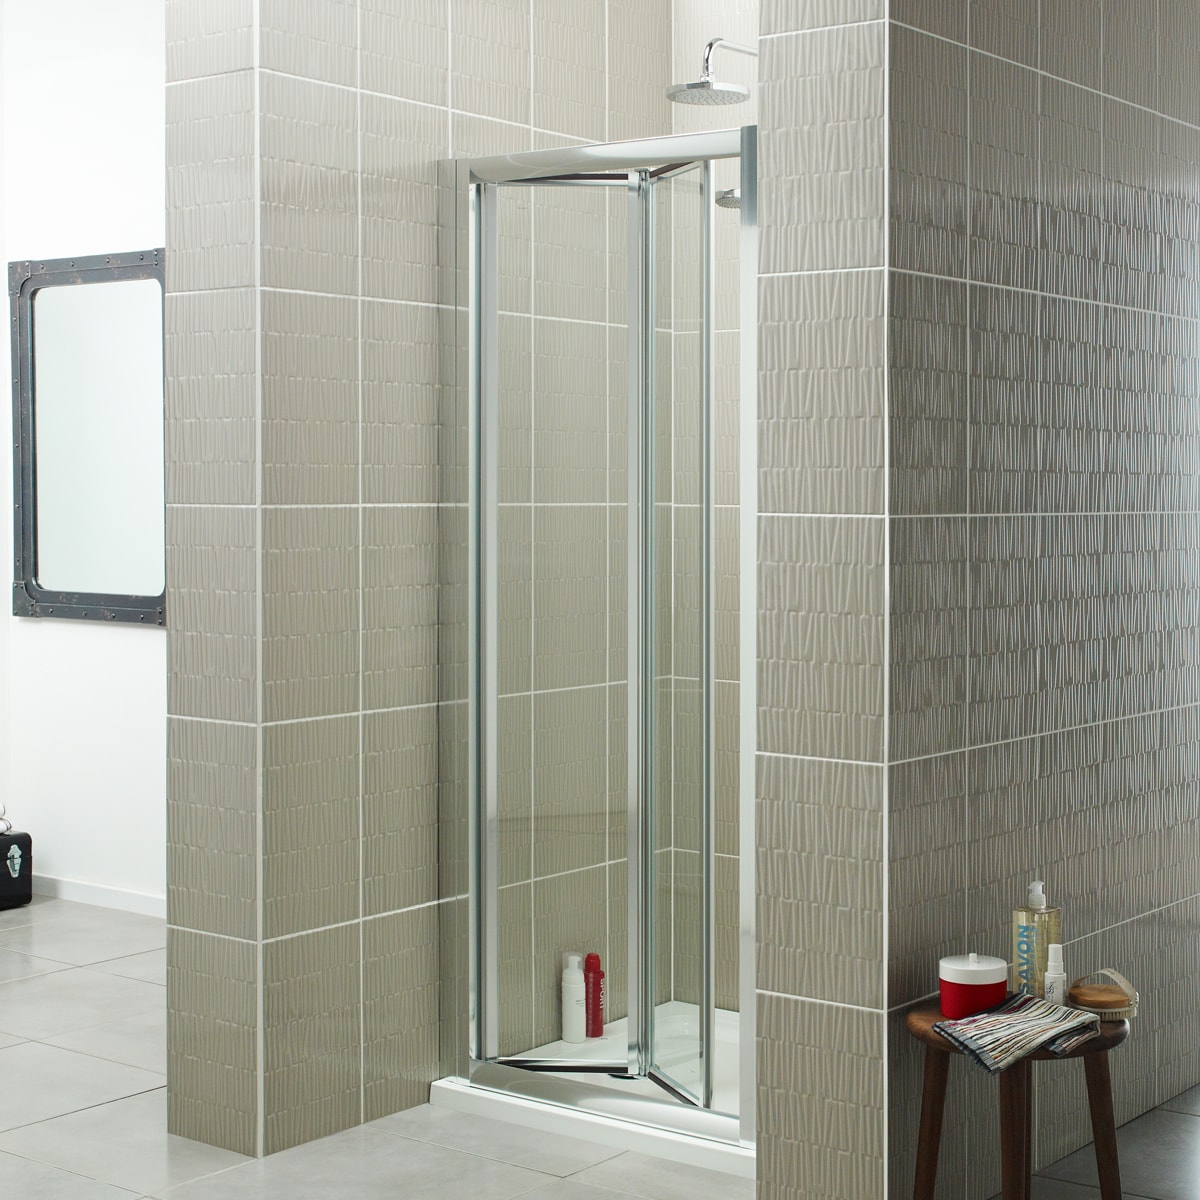 Koncept Bi Fold Shower Enclosure Bathroom Studio Keighley